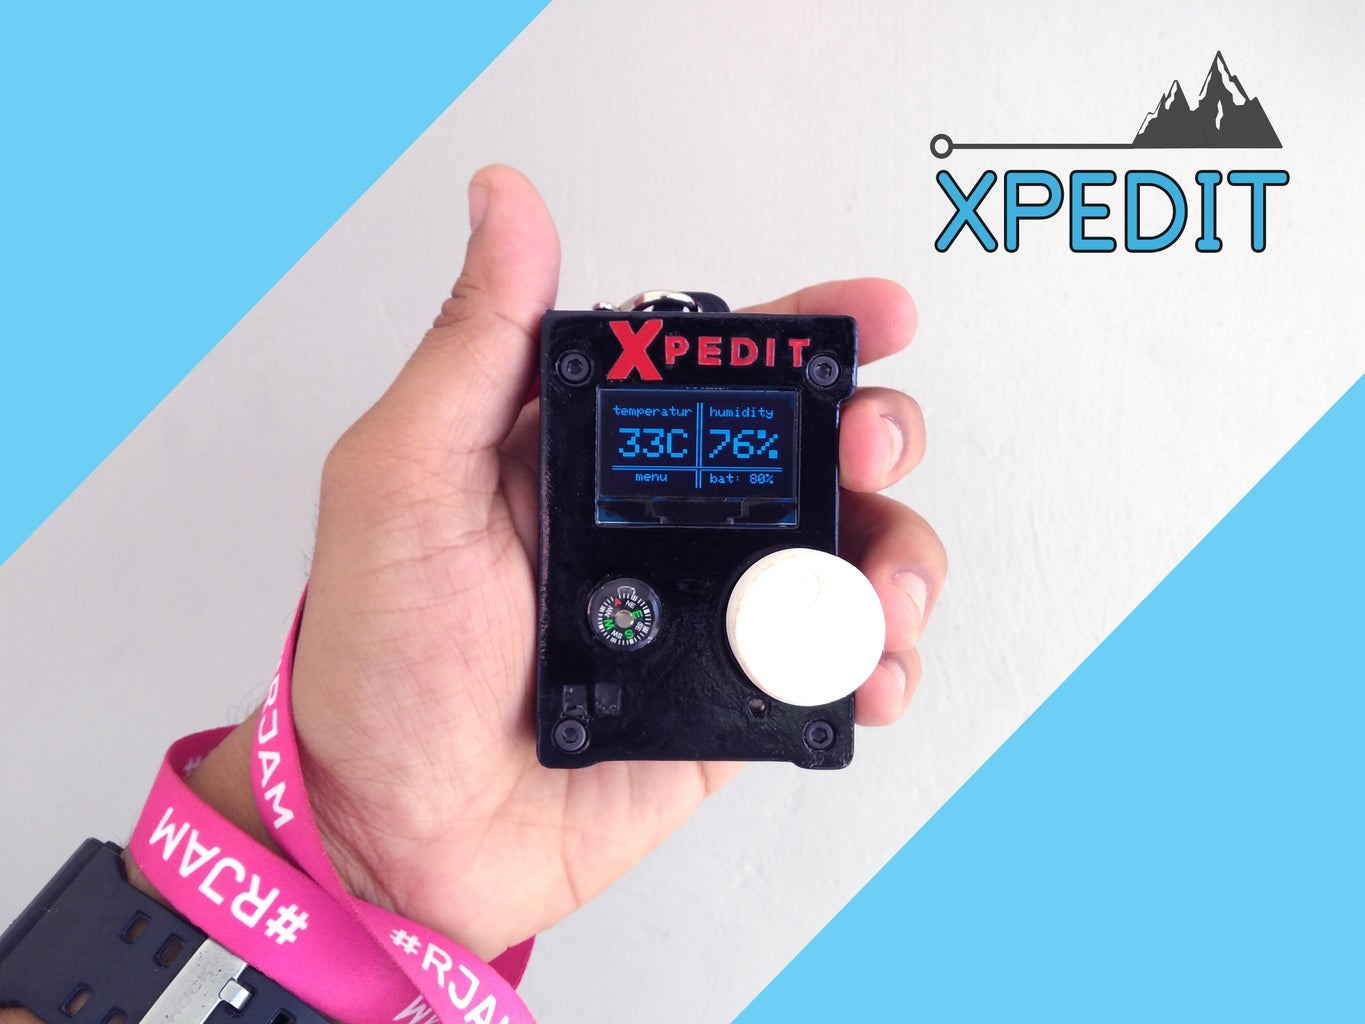 Xpedit - Atmosphere Monitoring Device for Hiking and Trekking